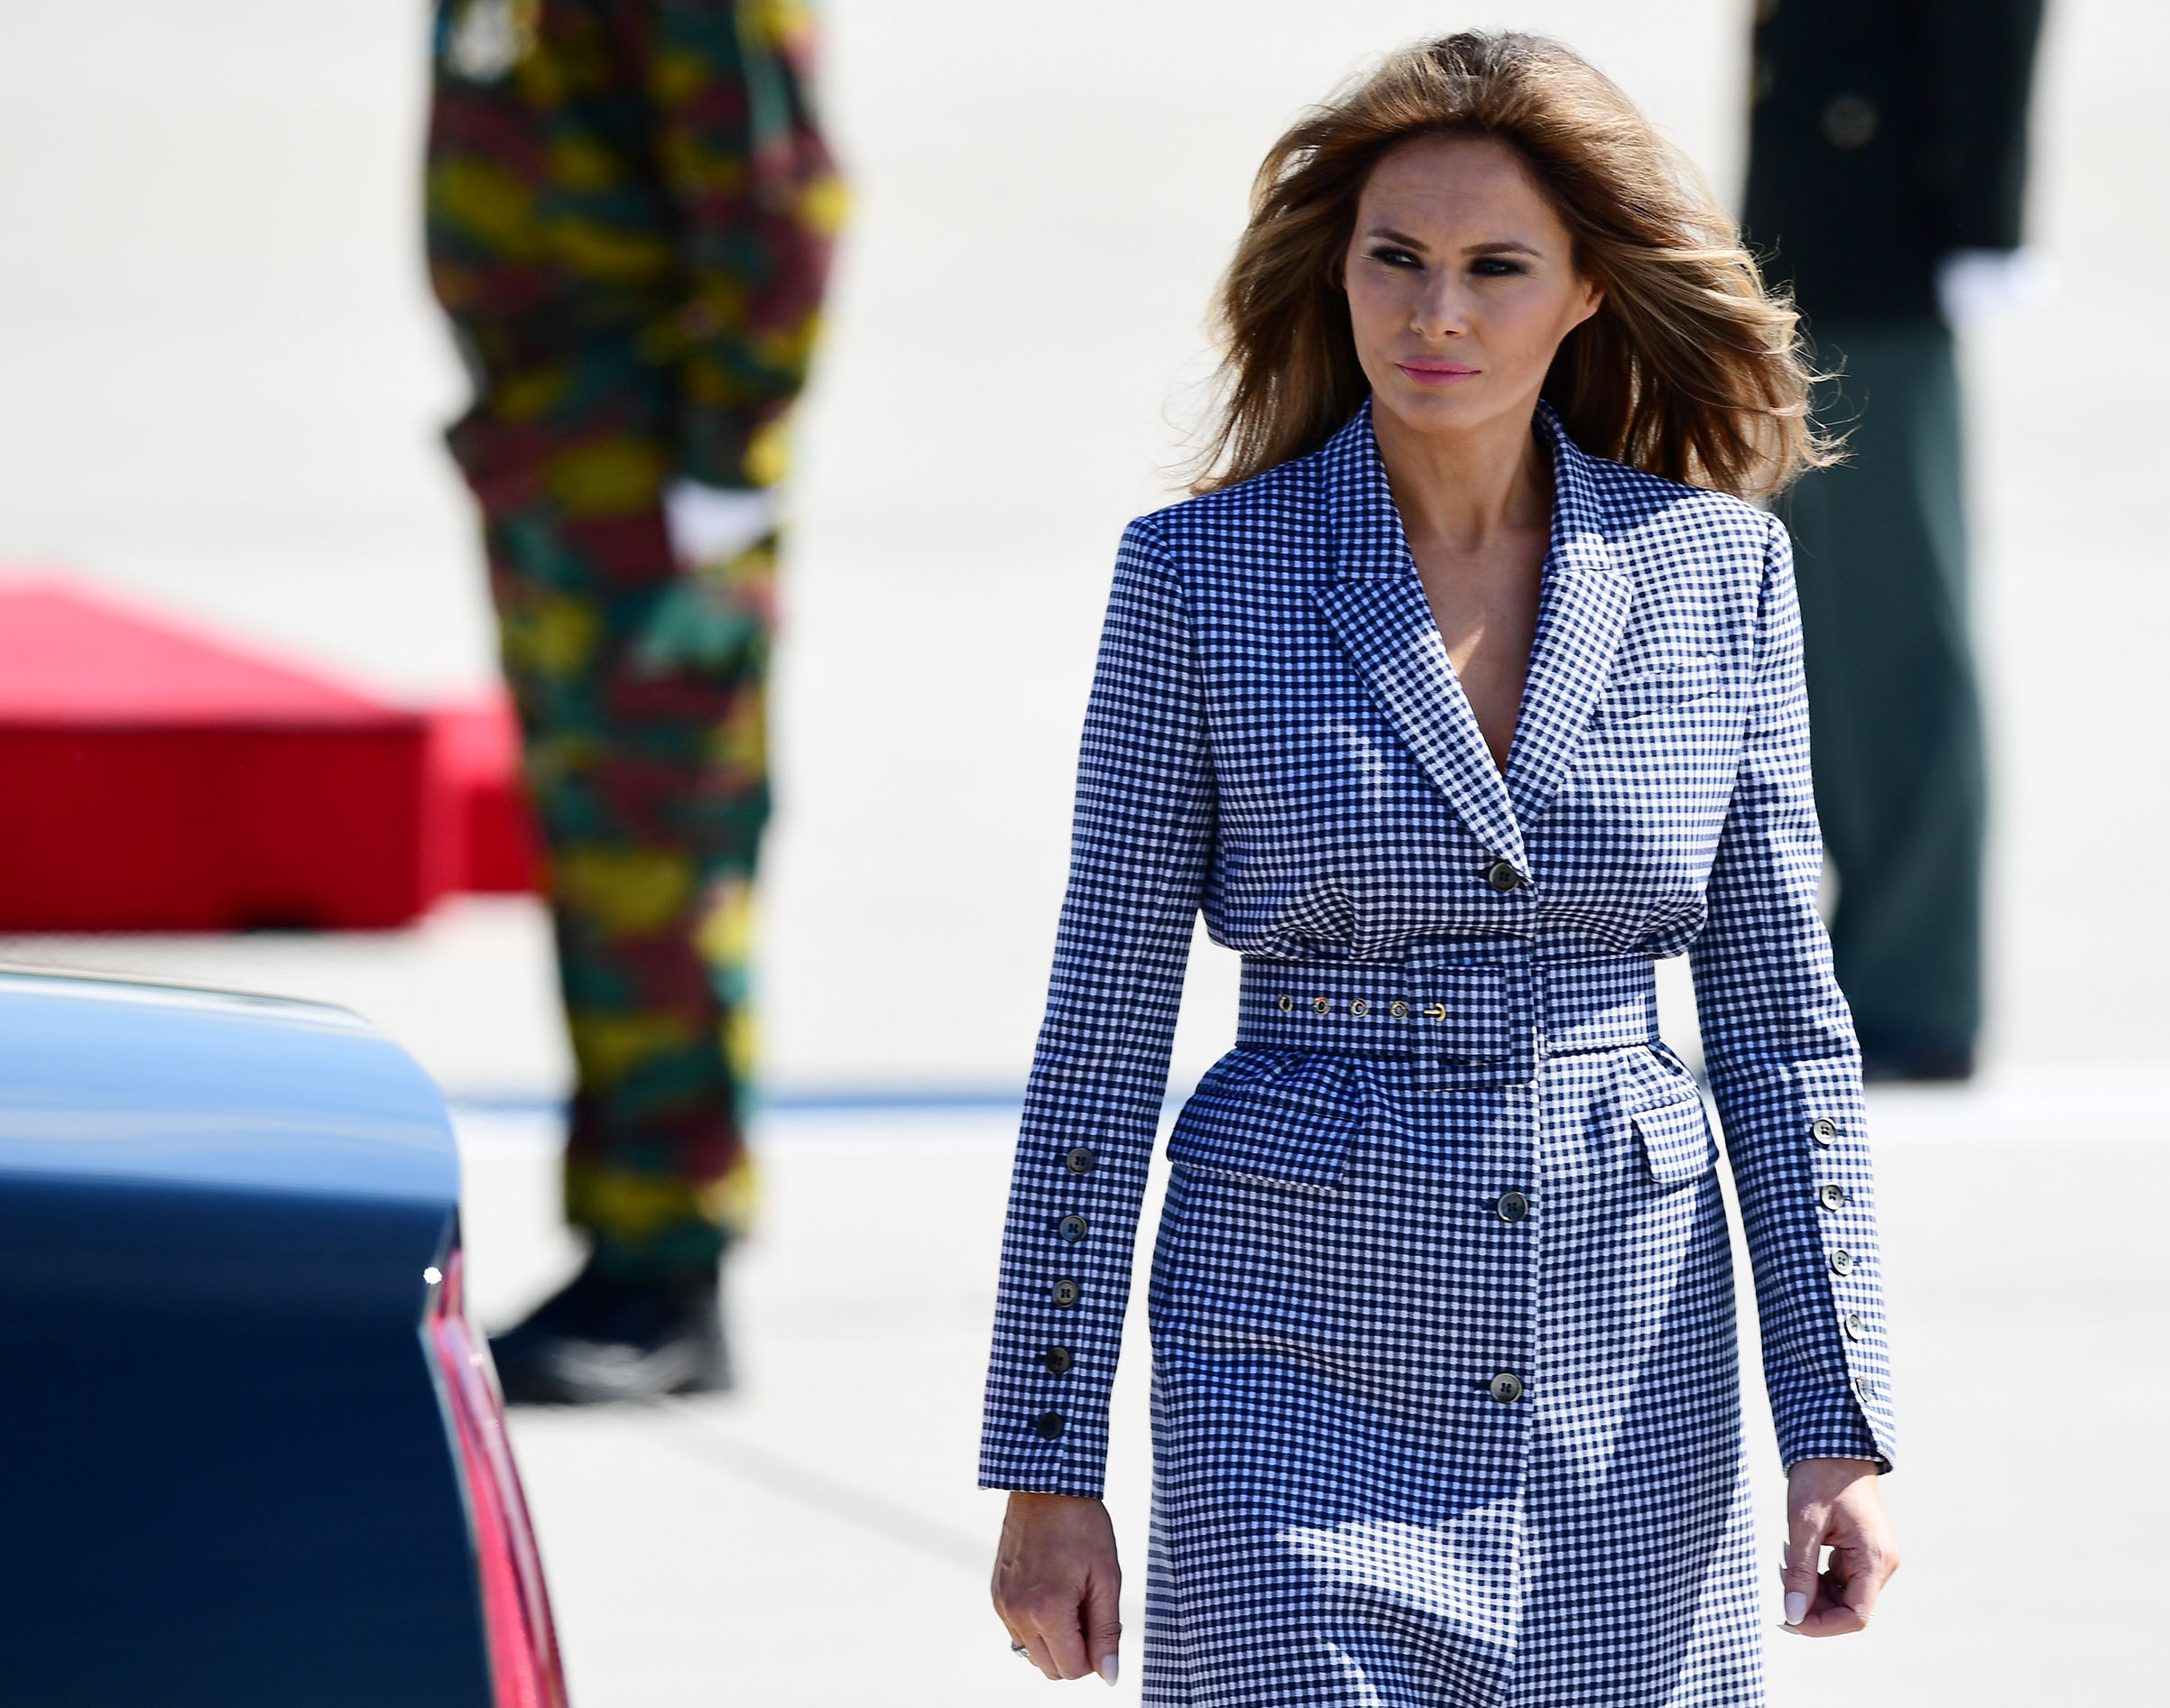 First lady Melania Trump wearing a Michael Kors coat dress, walks upon arrival at the Melsbroek military airport in Steenokkerzeel on May 24, 2017, on the eve of the NATO summit.